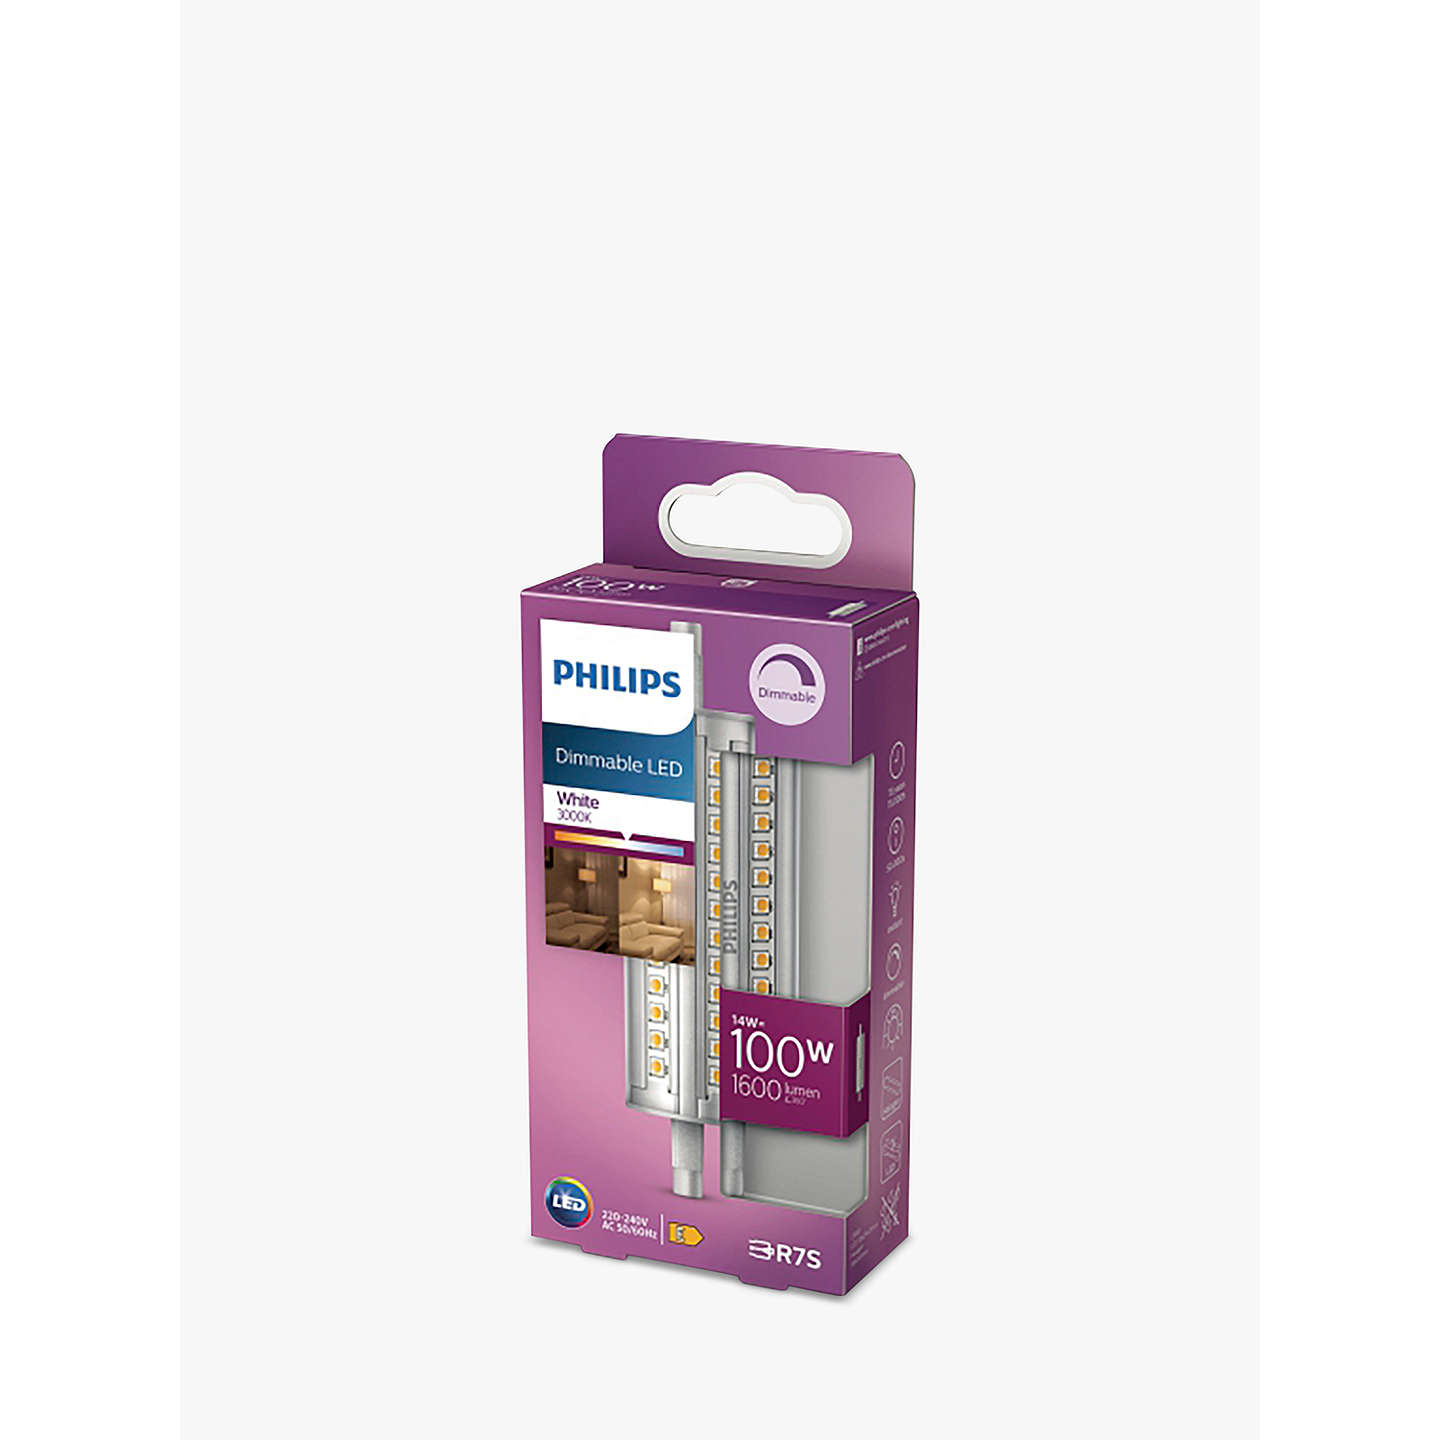 BuyPhilips 14W R7s LED Dimmable Tube Bulb, Clear Online at johnlewis.com